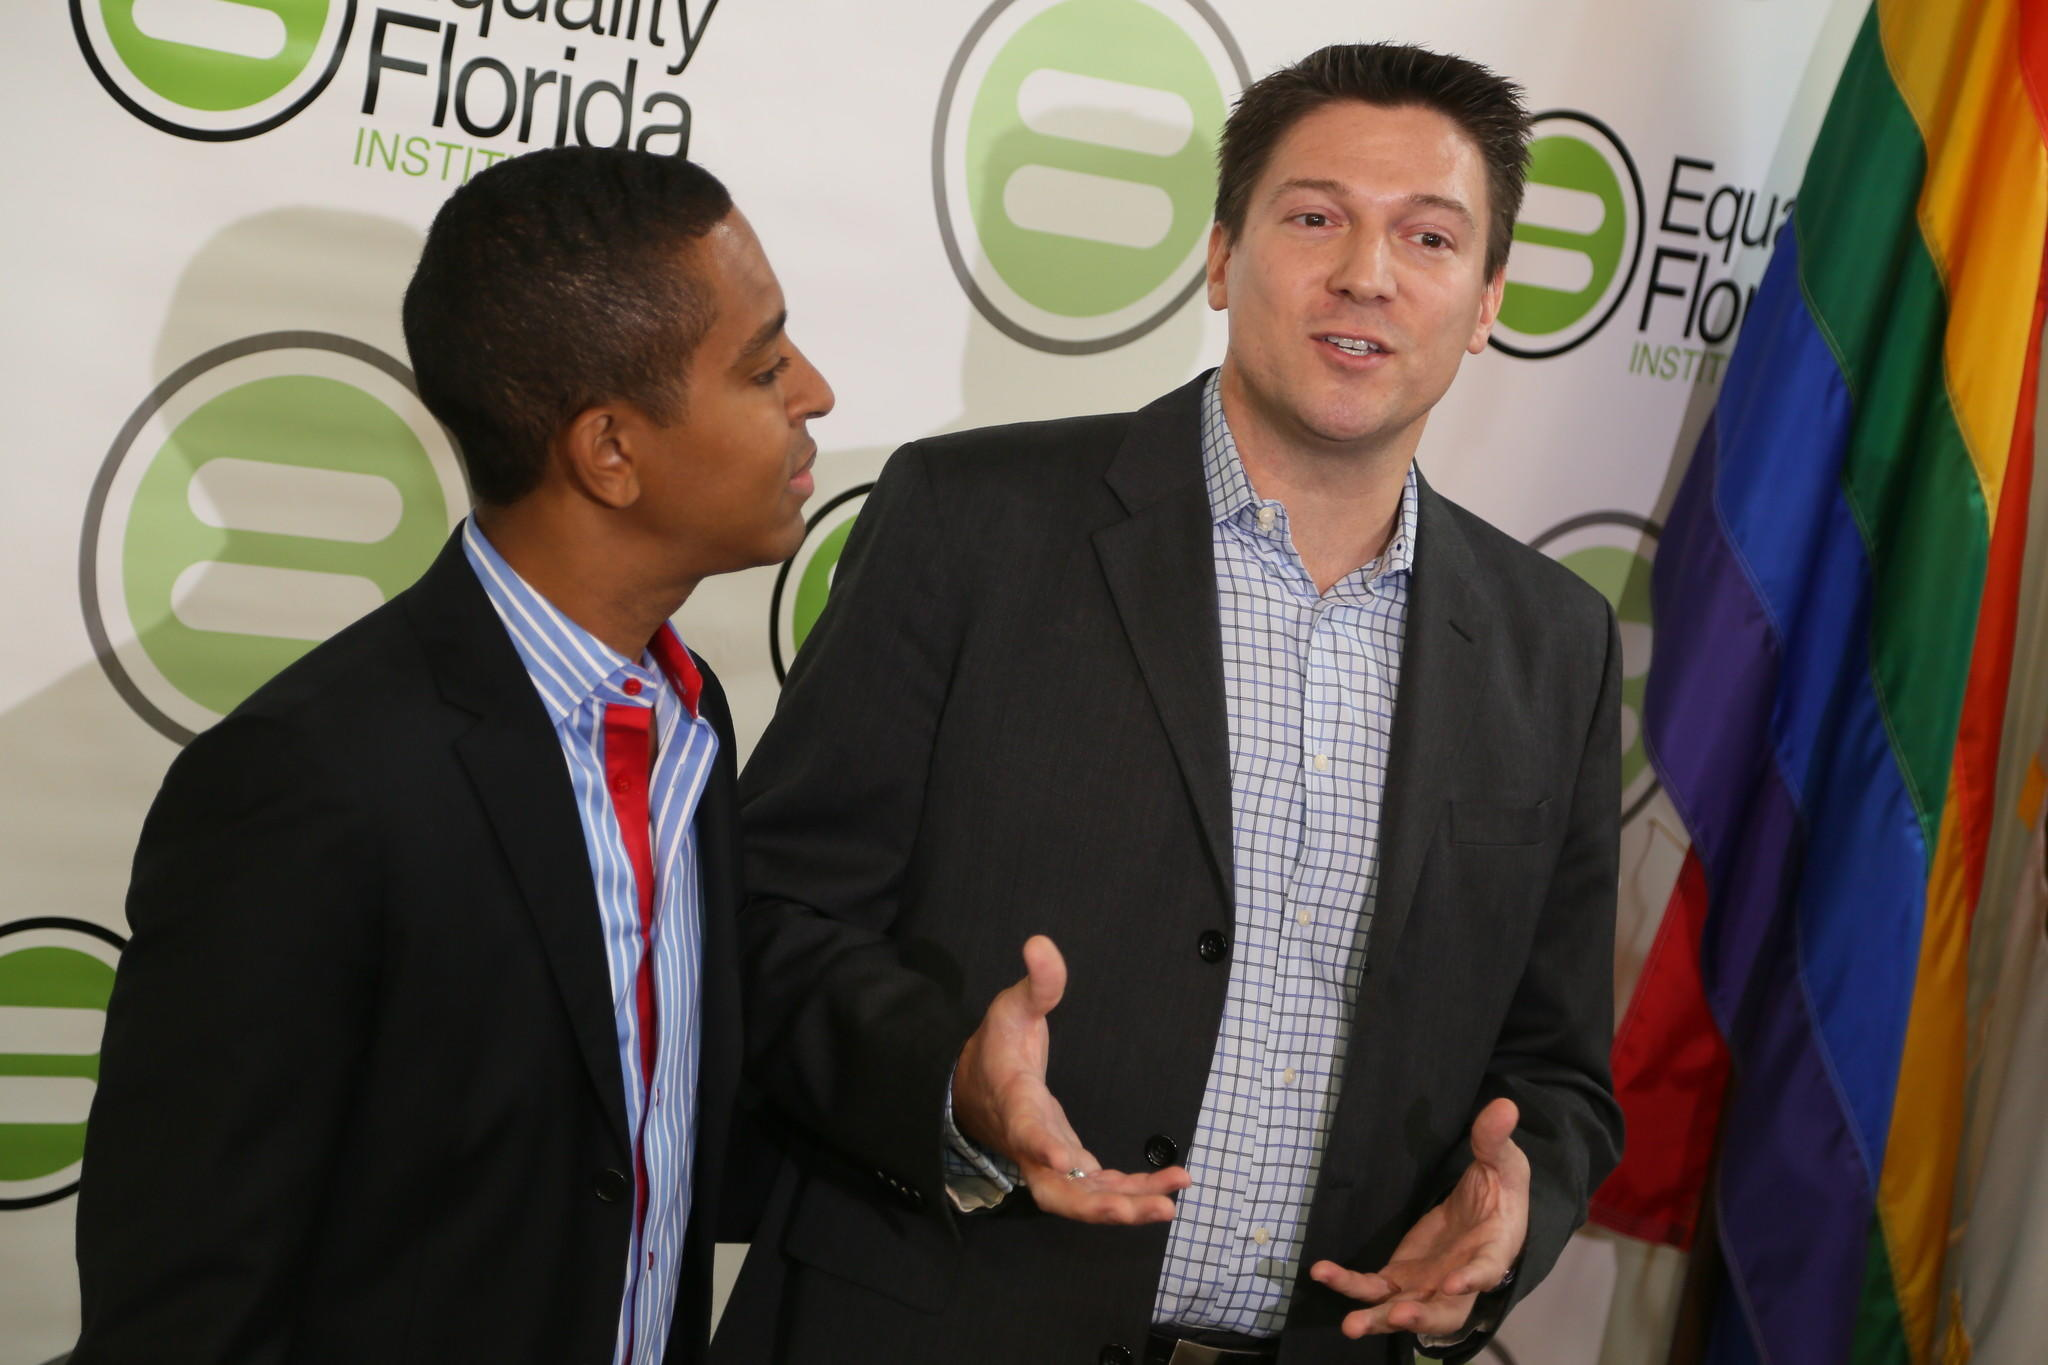 Jeff Delmay looks on as his partner, Todd Delmay, both of Hollywood, speaks during a news conference held by Equality Florida in Miami Beach on Tuesday, Jan. 21, 2014. Six gay couples, including four couples from Broward County, are the plaintiffs in a lawsuit filed Tuesday by the main statewide gay rights group, Equality Florida. Amy Beth Bennett, Sun Sentinel